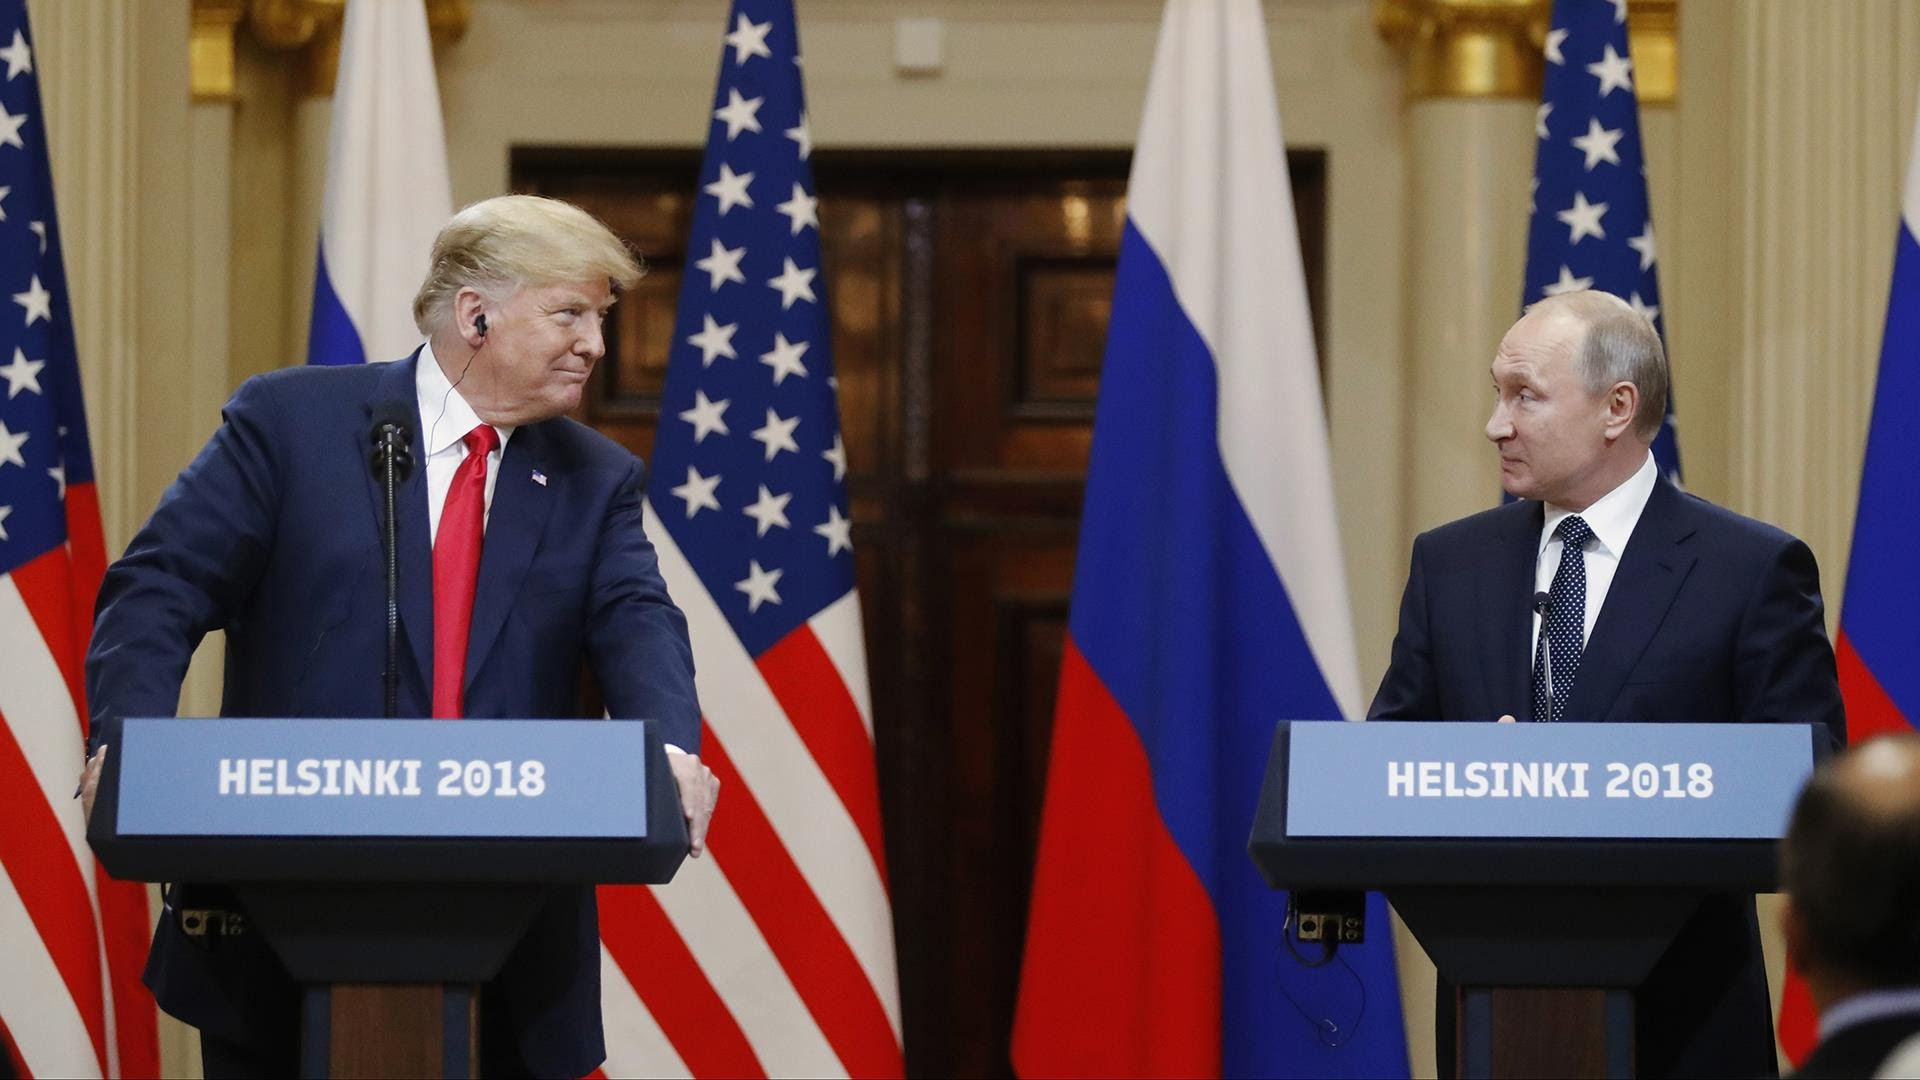 Putin makes bombshell offer to Trump in Helsinki